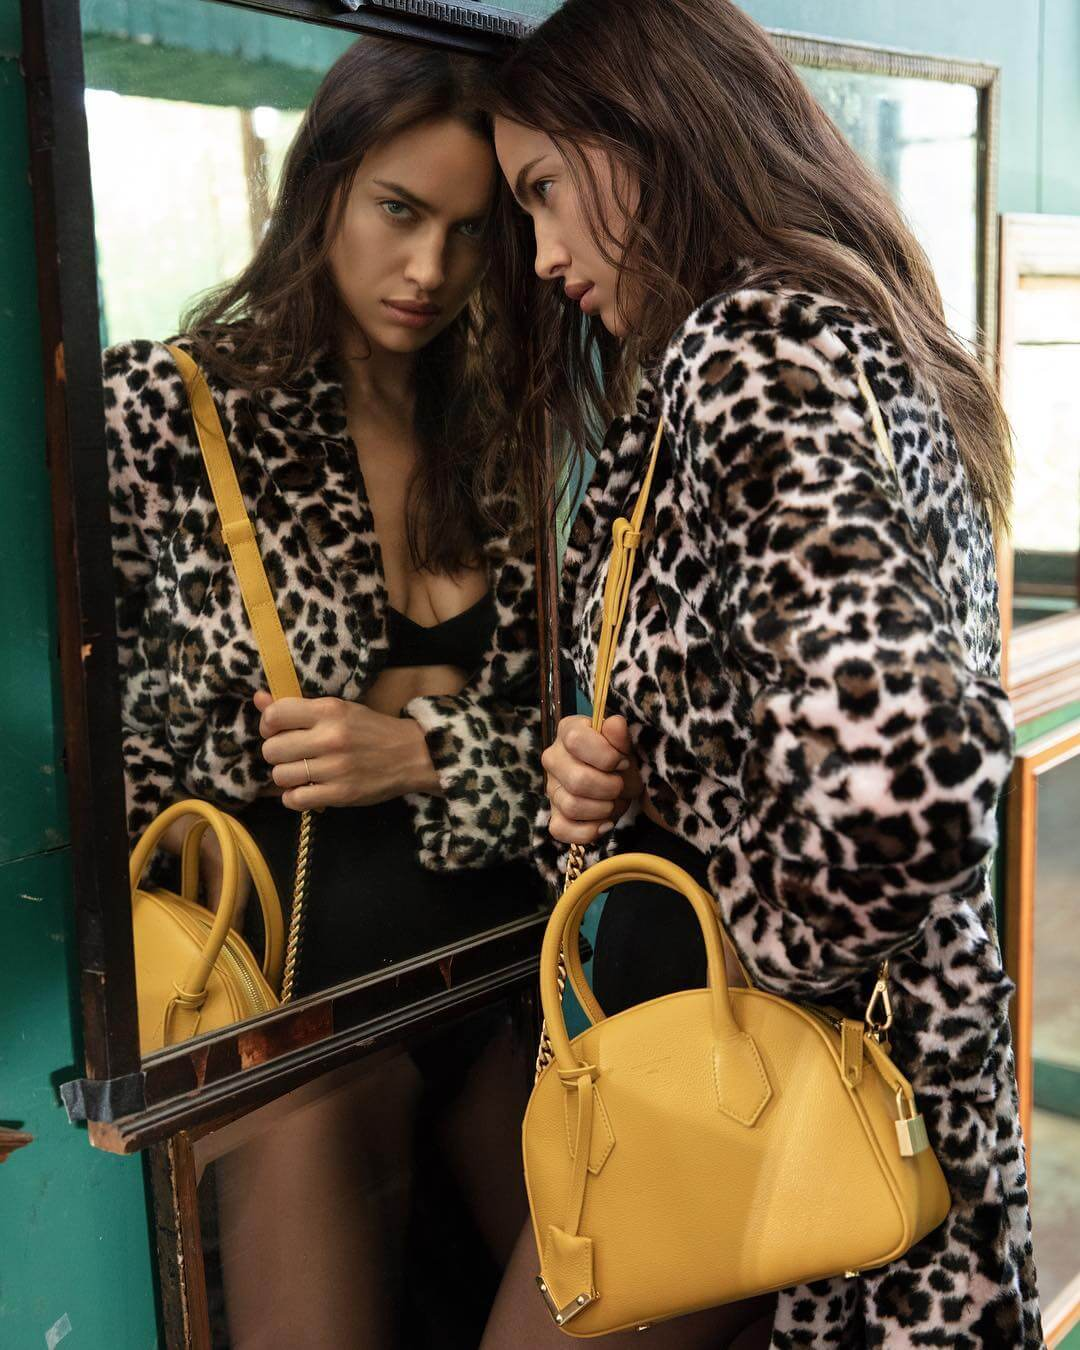 Irina Shayk in The Kooples Outfit Photoshoot on September 19, 2018 1